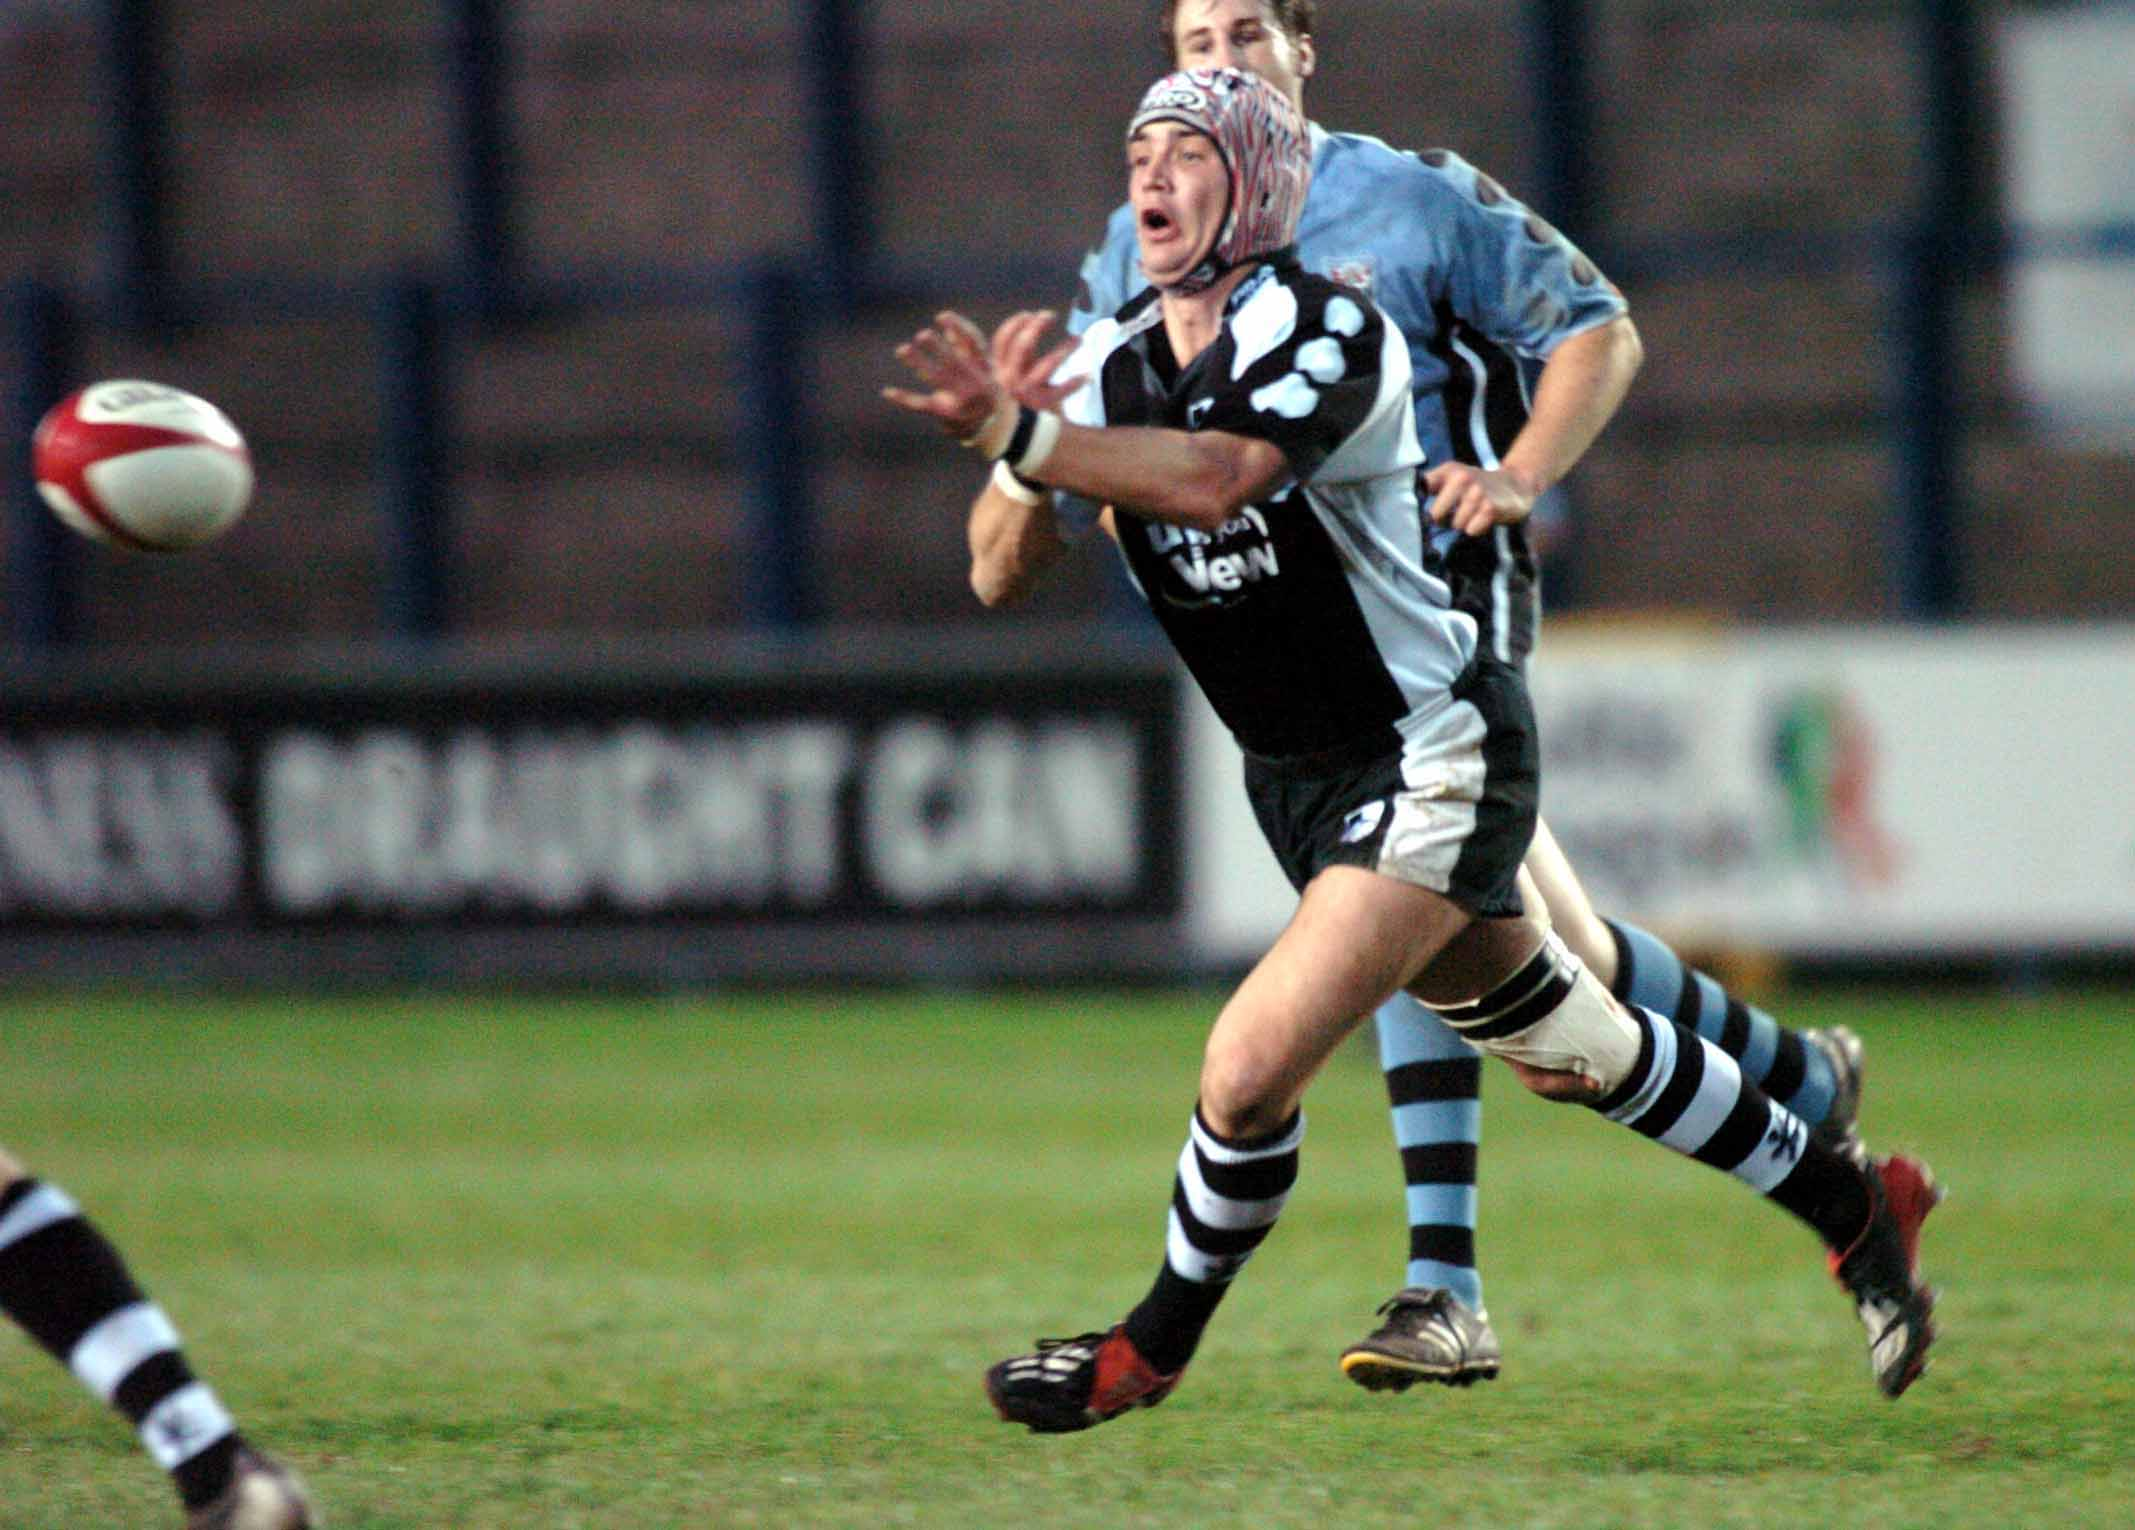 Paul Matthews playing for Pontypridd against Cardiff in 2004